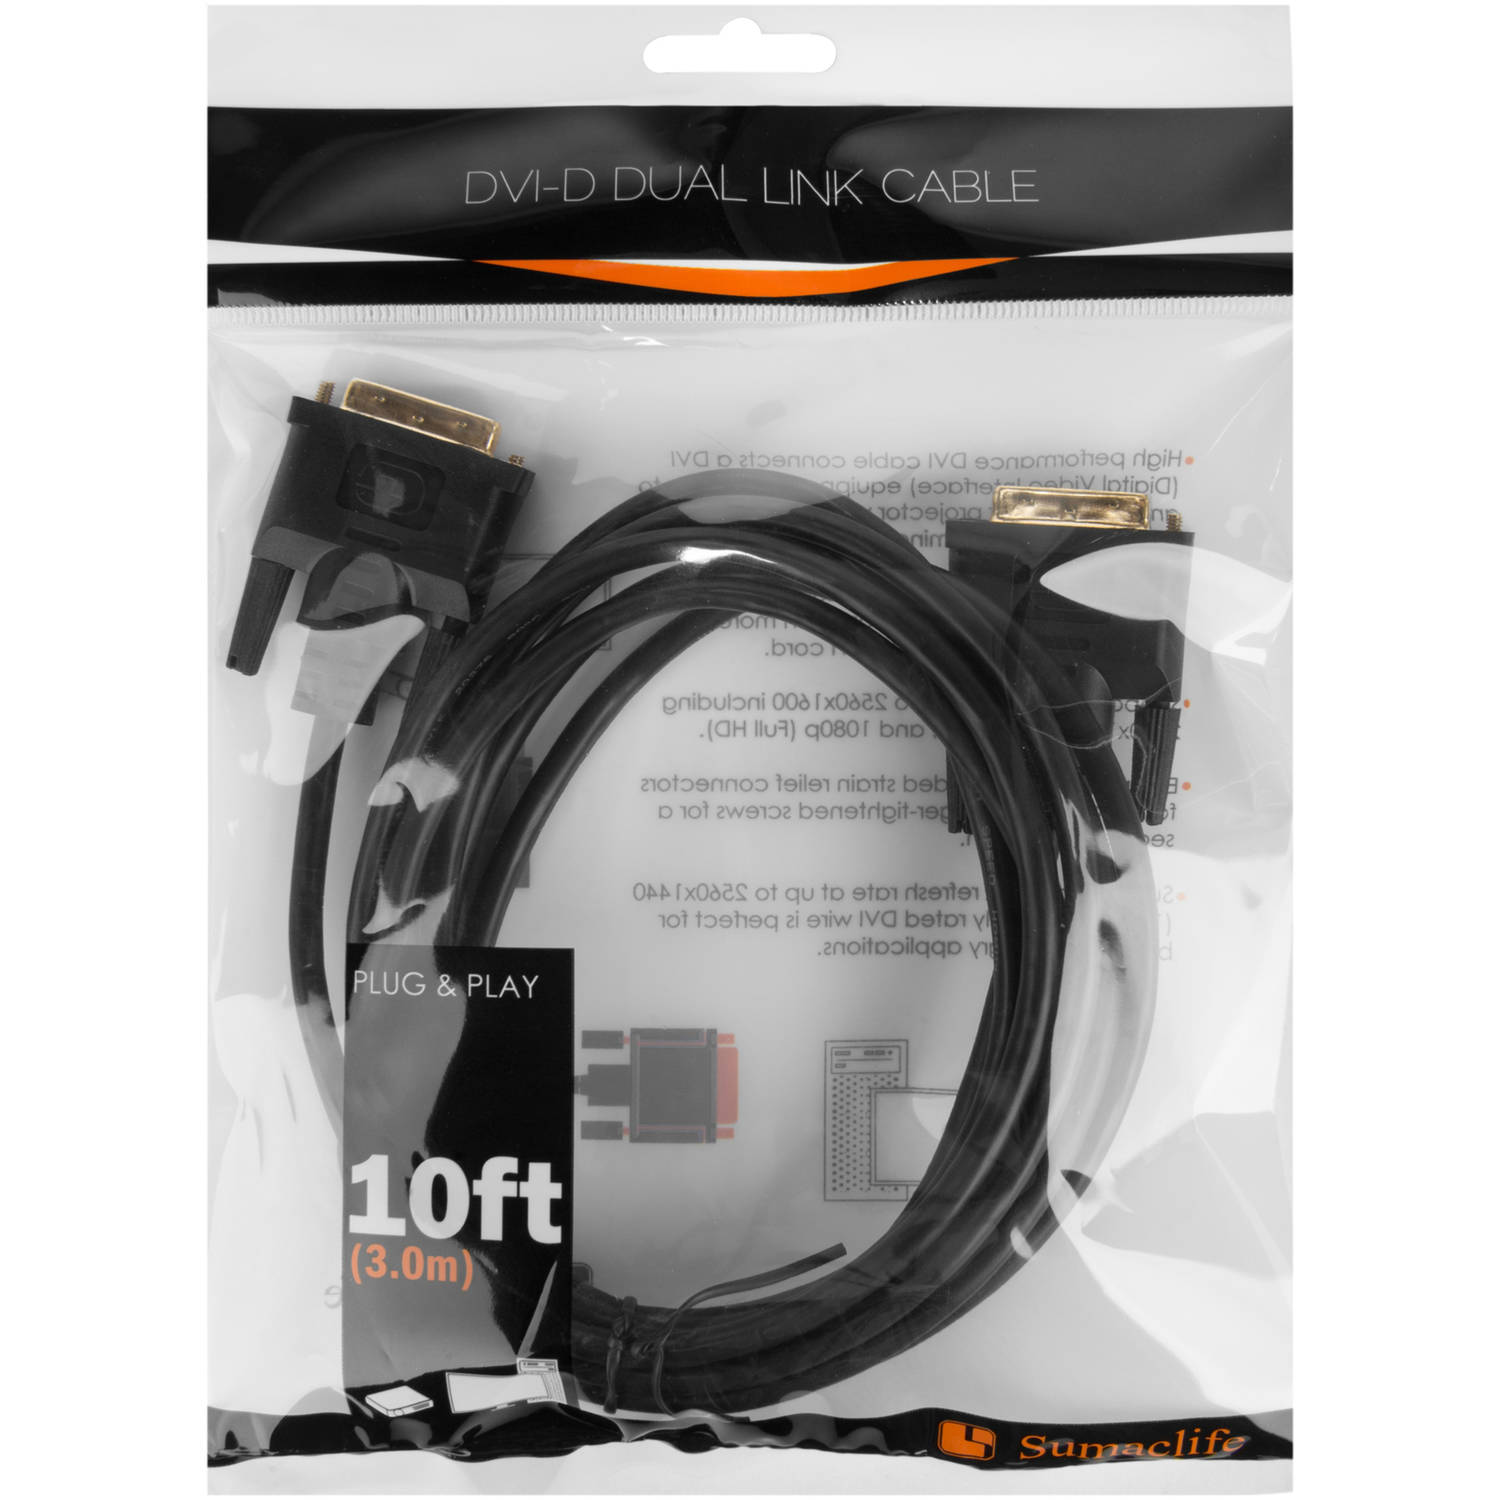 DVI DL Computer Monitor Cable, 10""